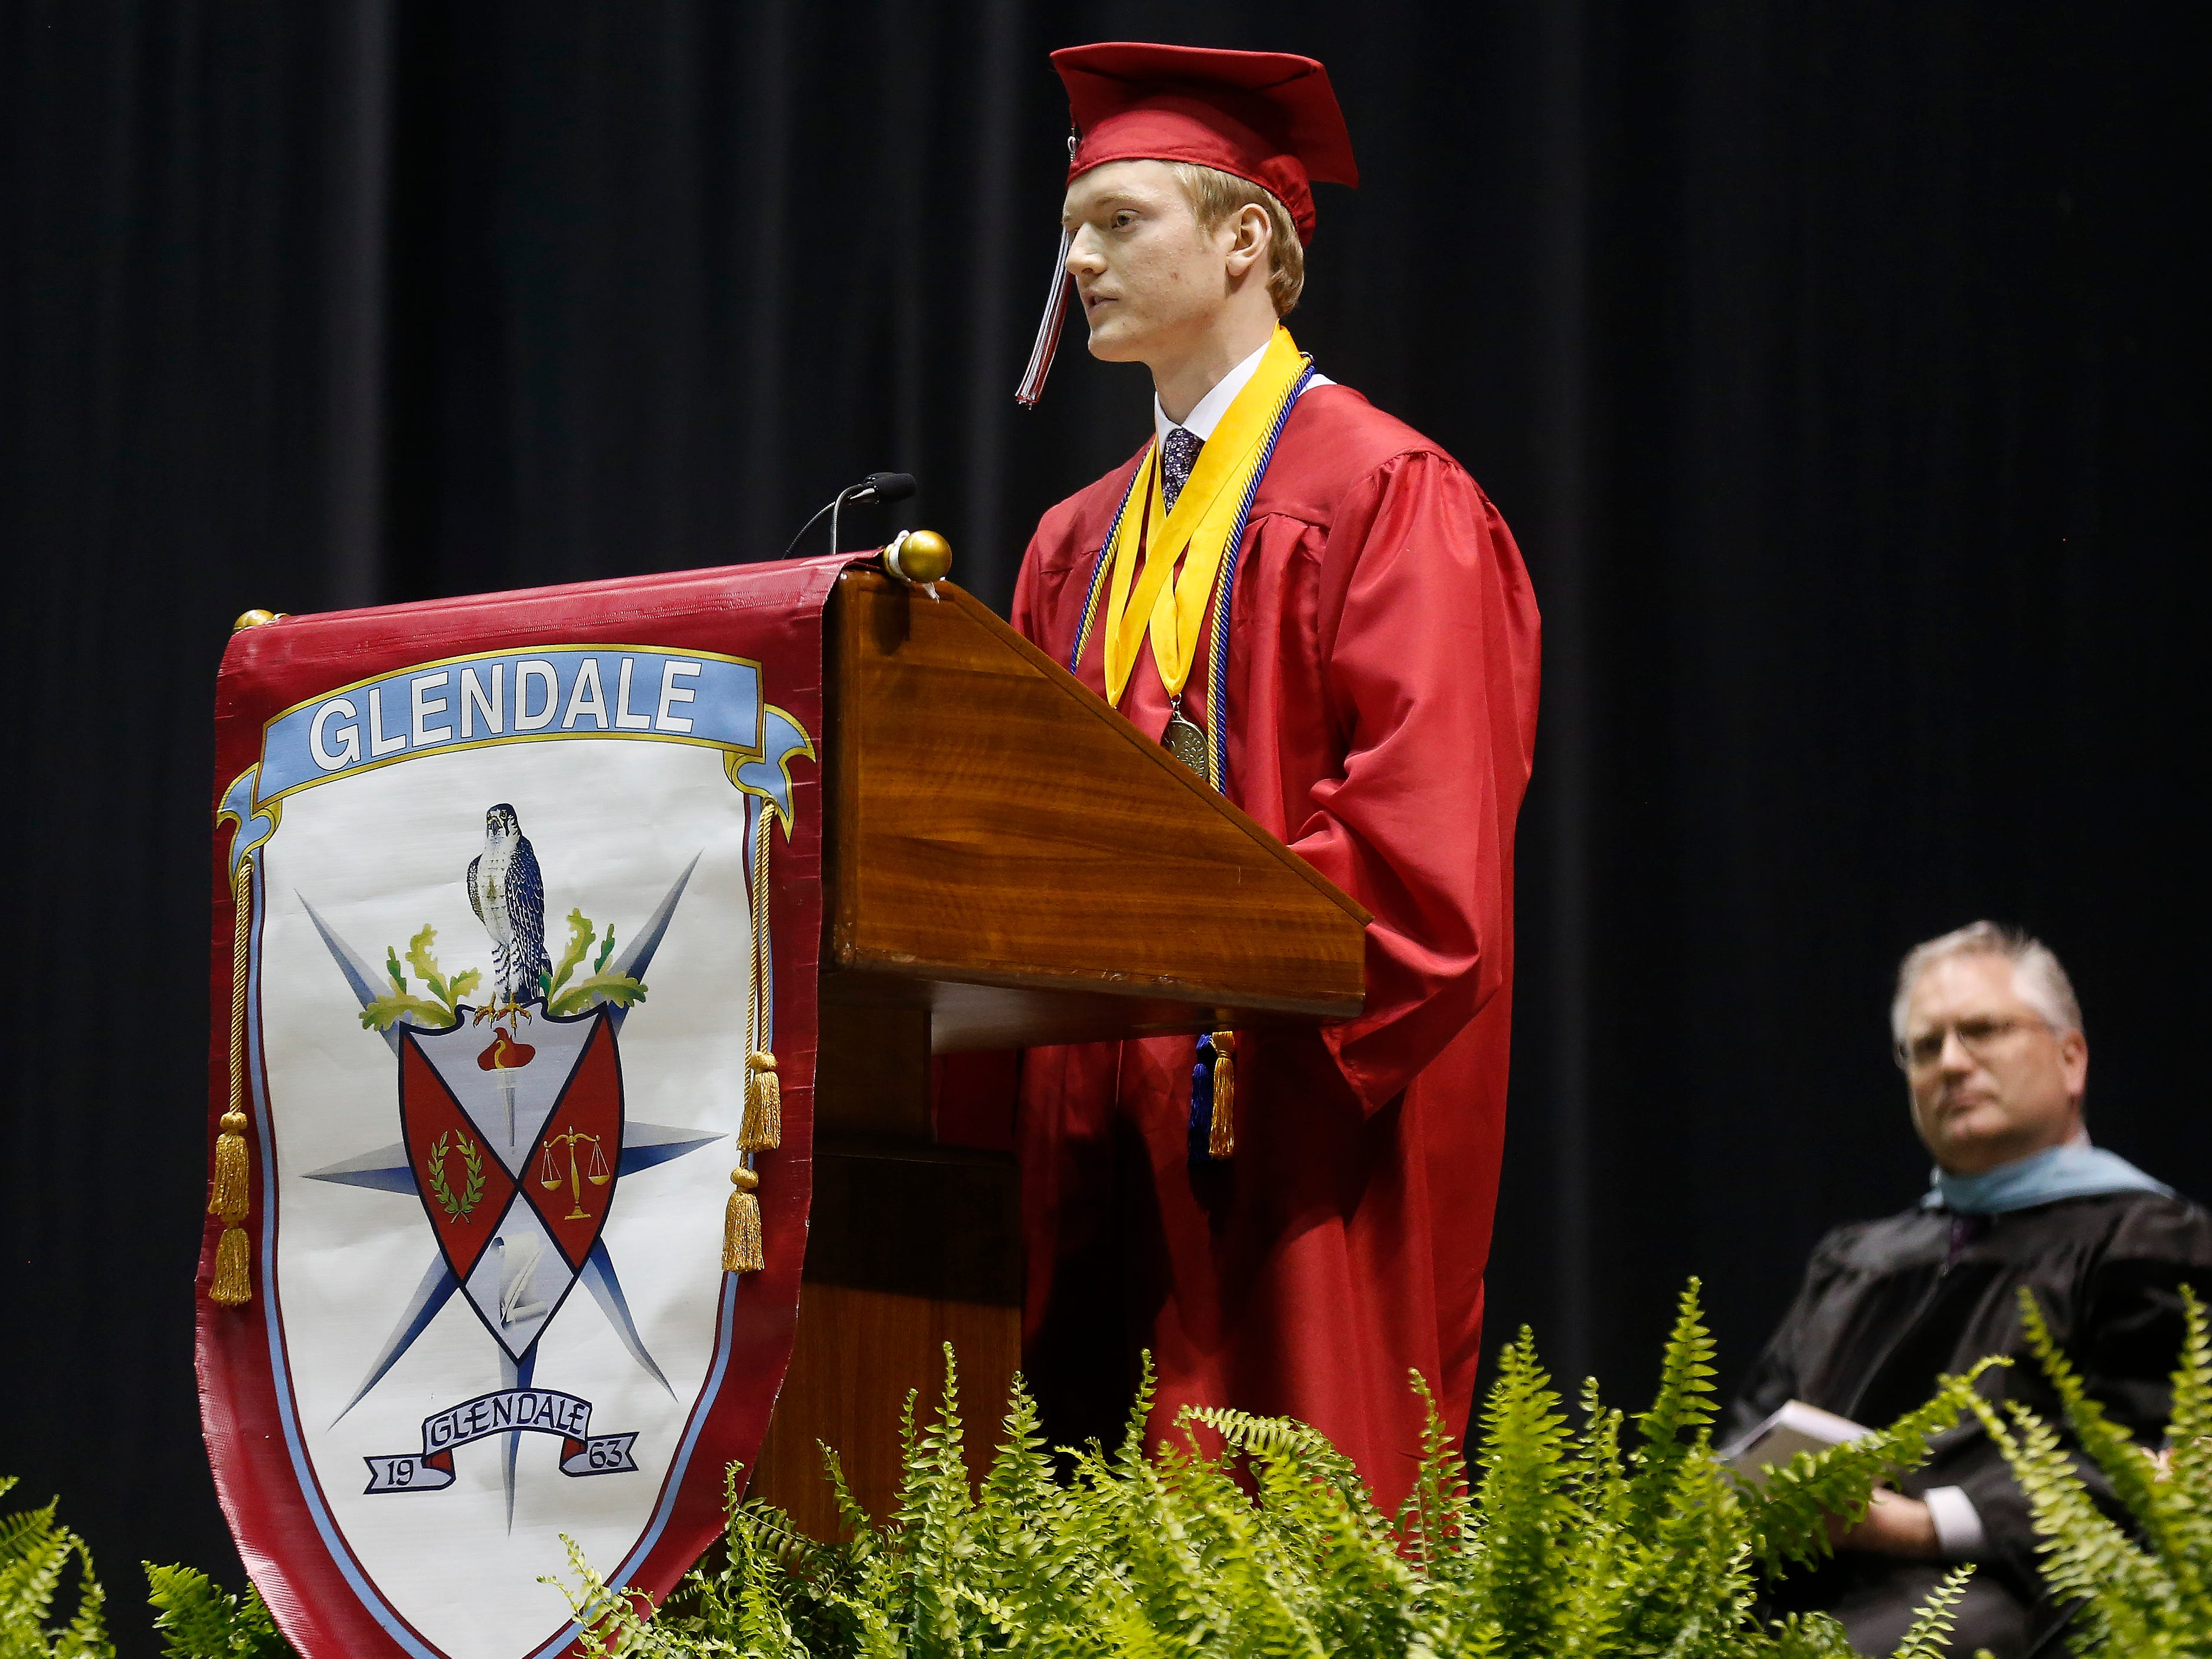 Ethan Miller speaks during Glendale High School's Commencement Ceremony at JQH Arena on Thursday, May 9, 2019.